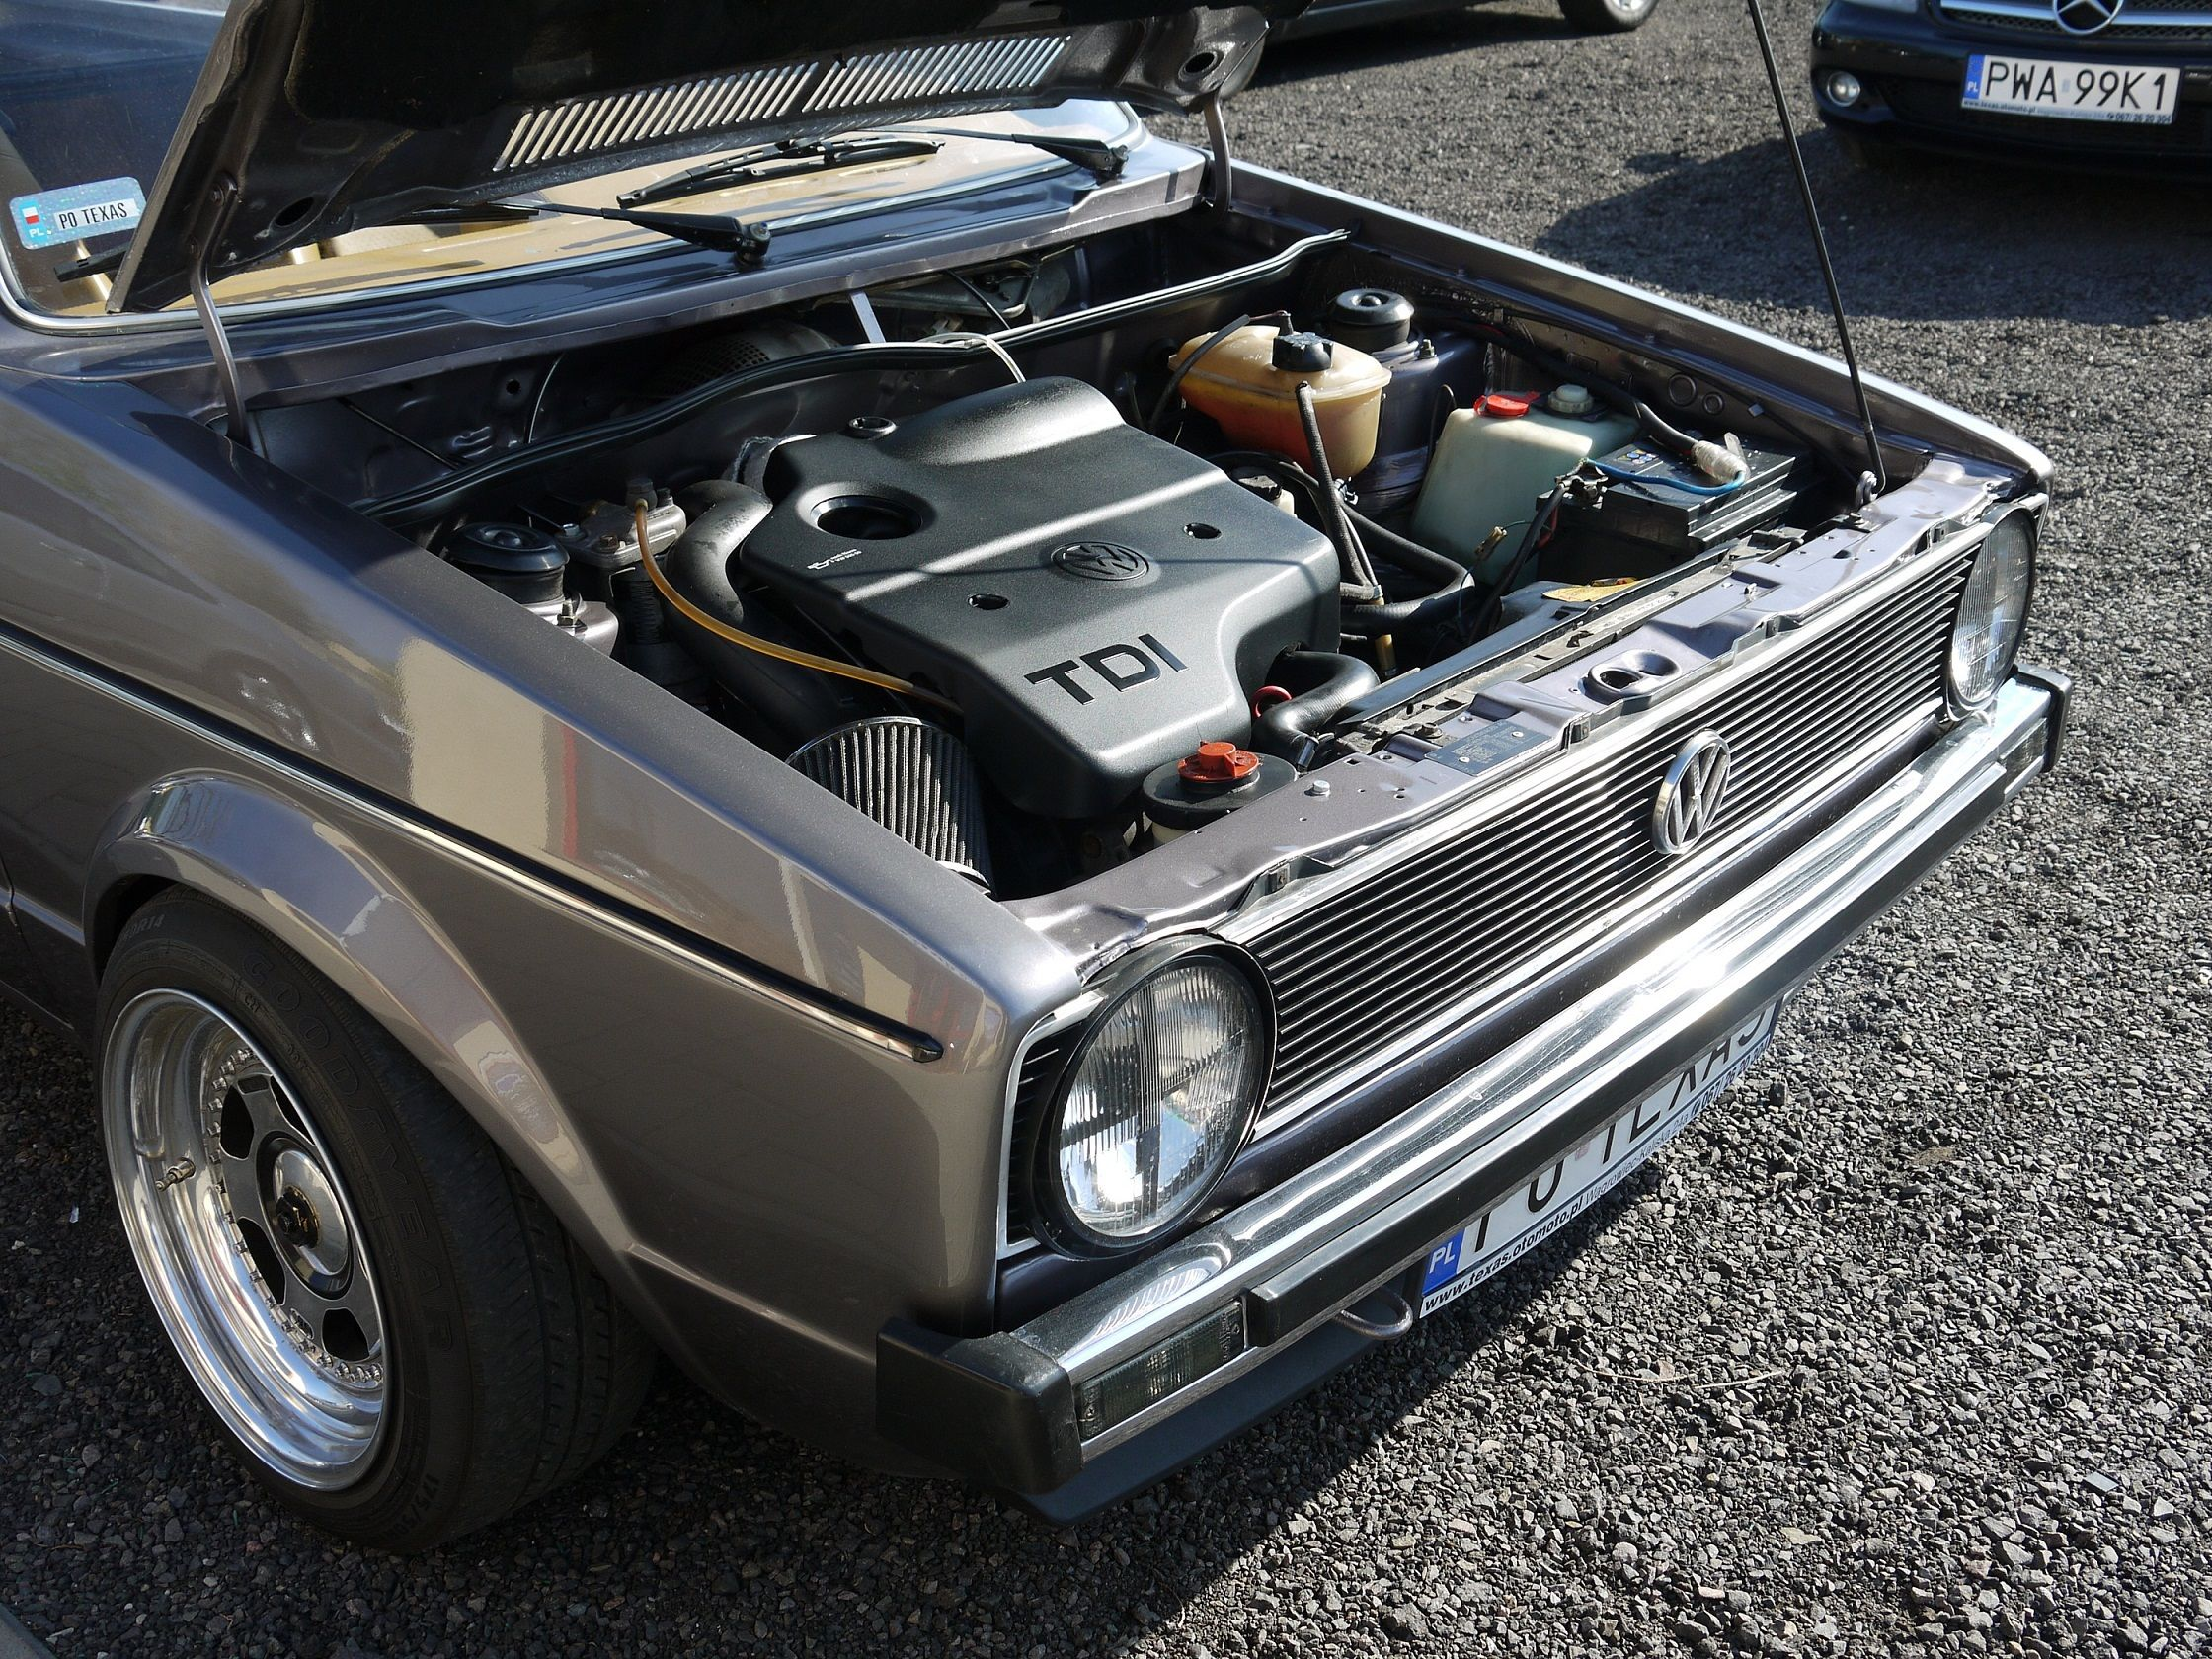 Vwvortex Com Caddy Mk1 Texas From Poland Jeromes Stuff Mk1 Vw